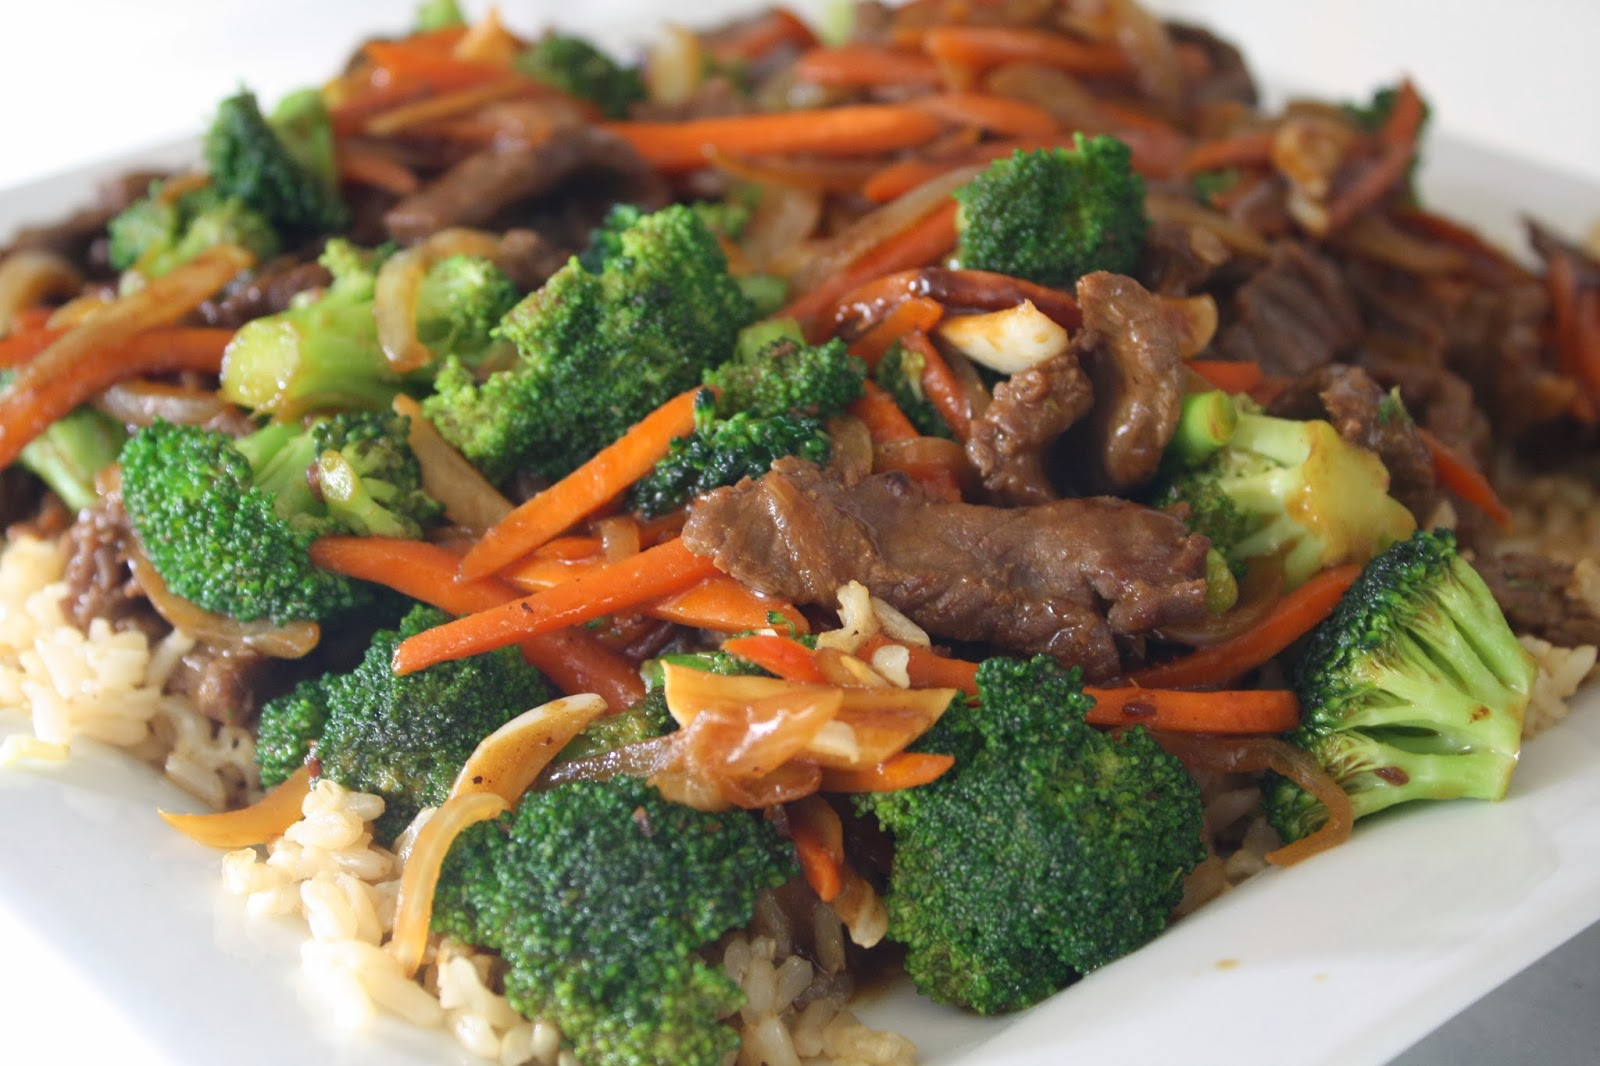 Lauren's Menu: Beef and Broccoli Stir Fry